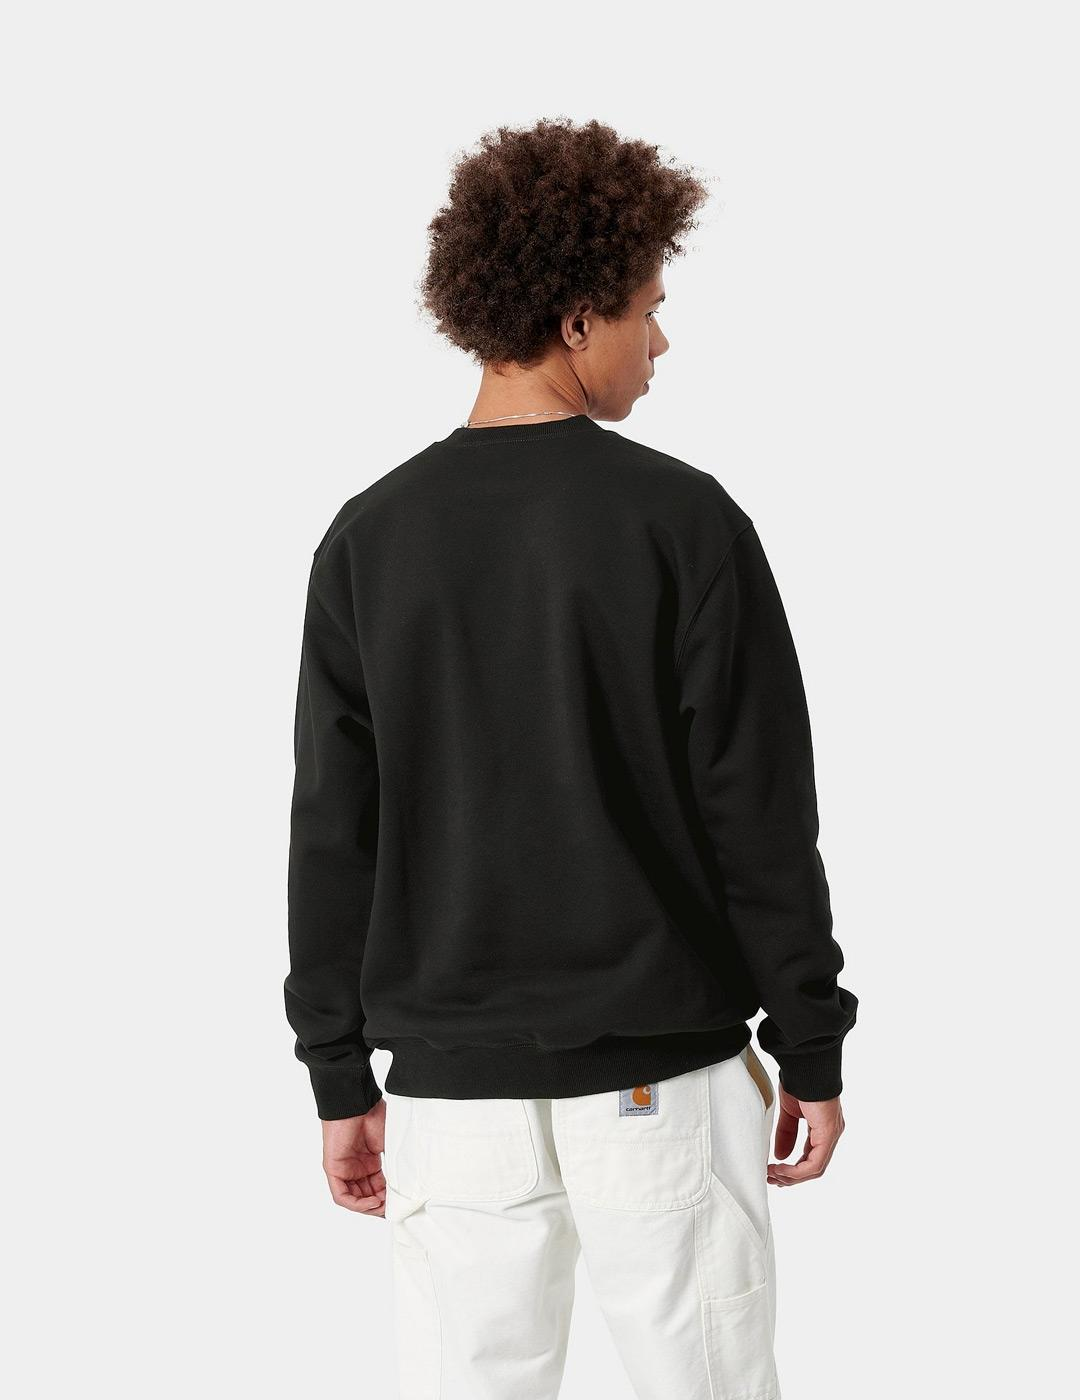 Sudadera Crew CARHARTT SWEAT - Black / White